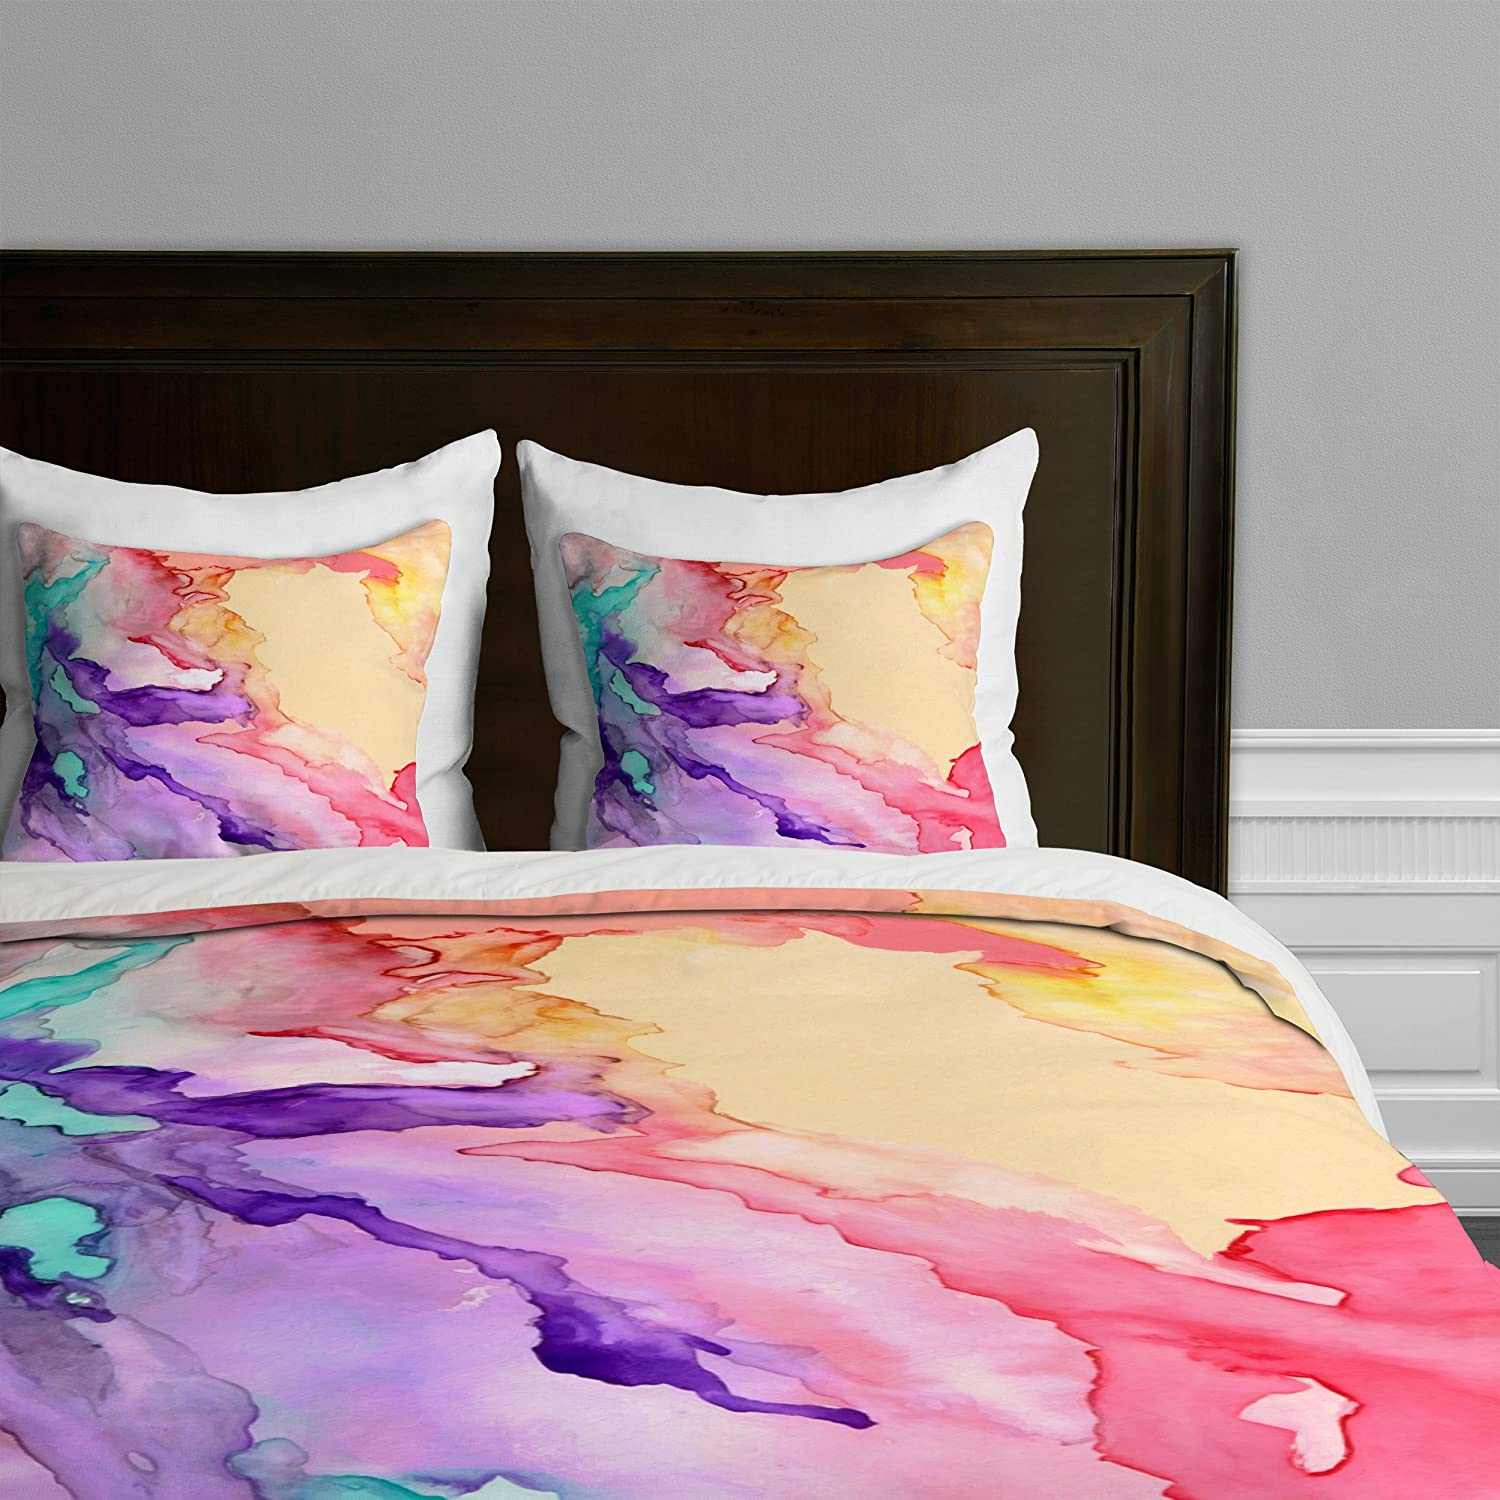 overs collection seasonal n bedding make at nordstrom easy bed positano levtex home chloe